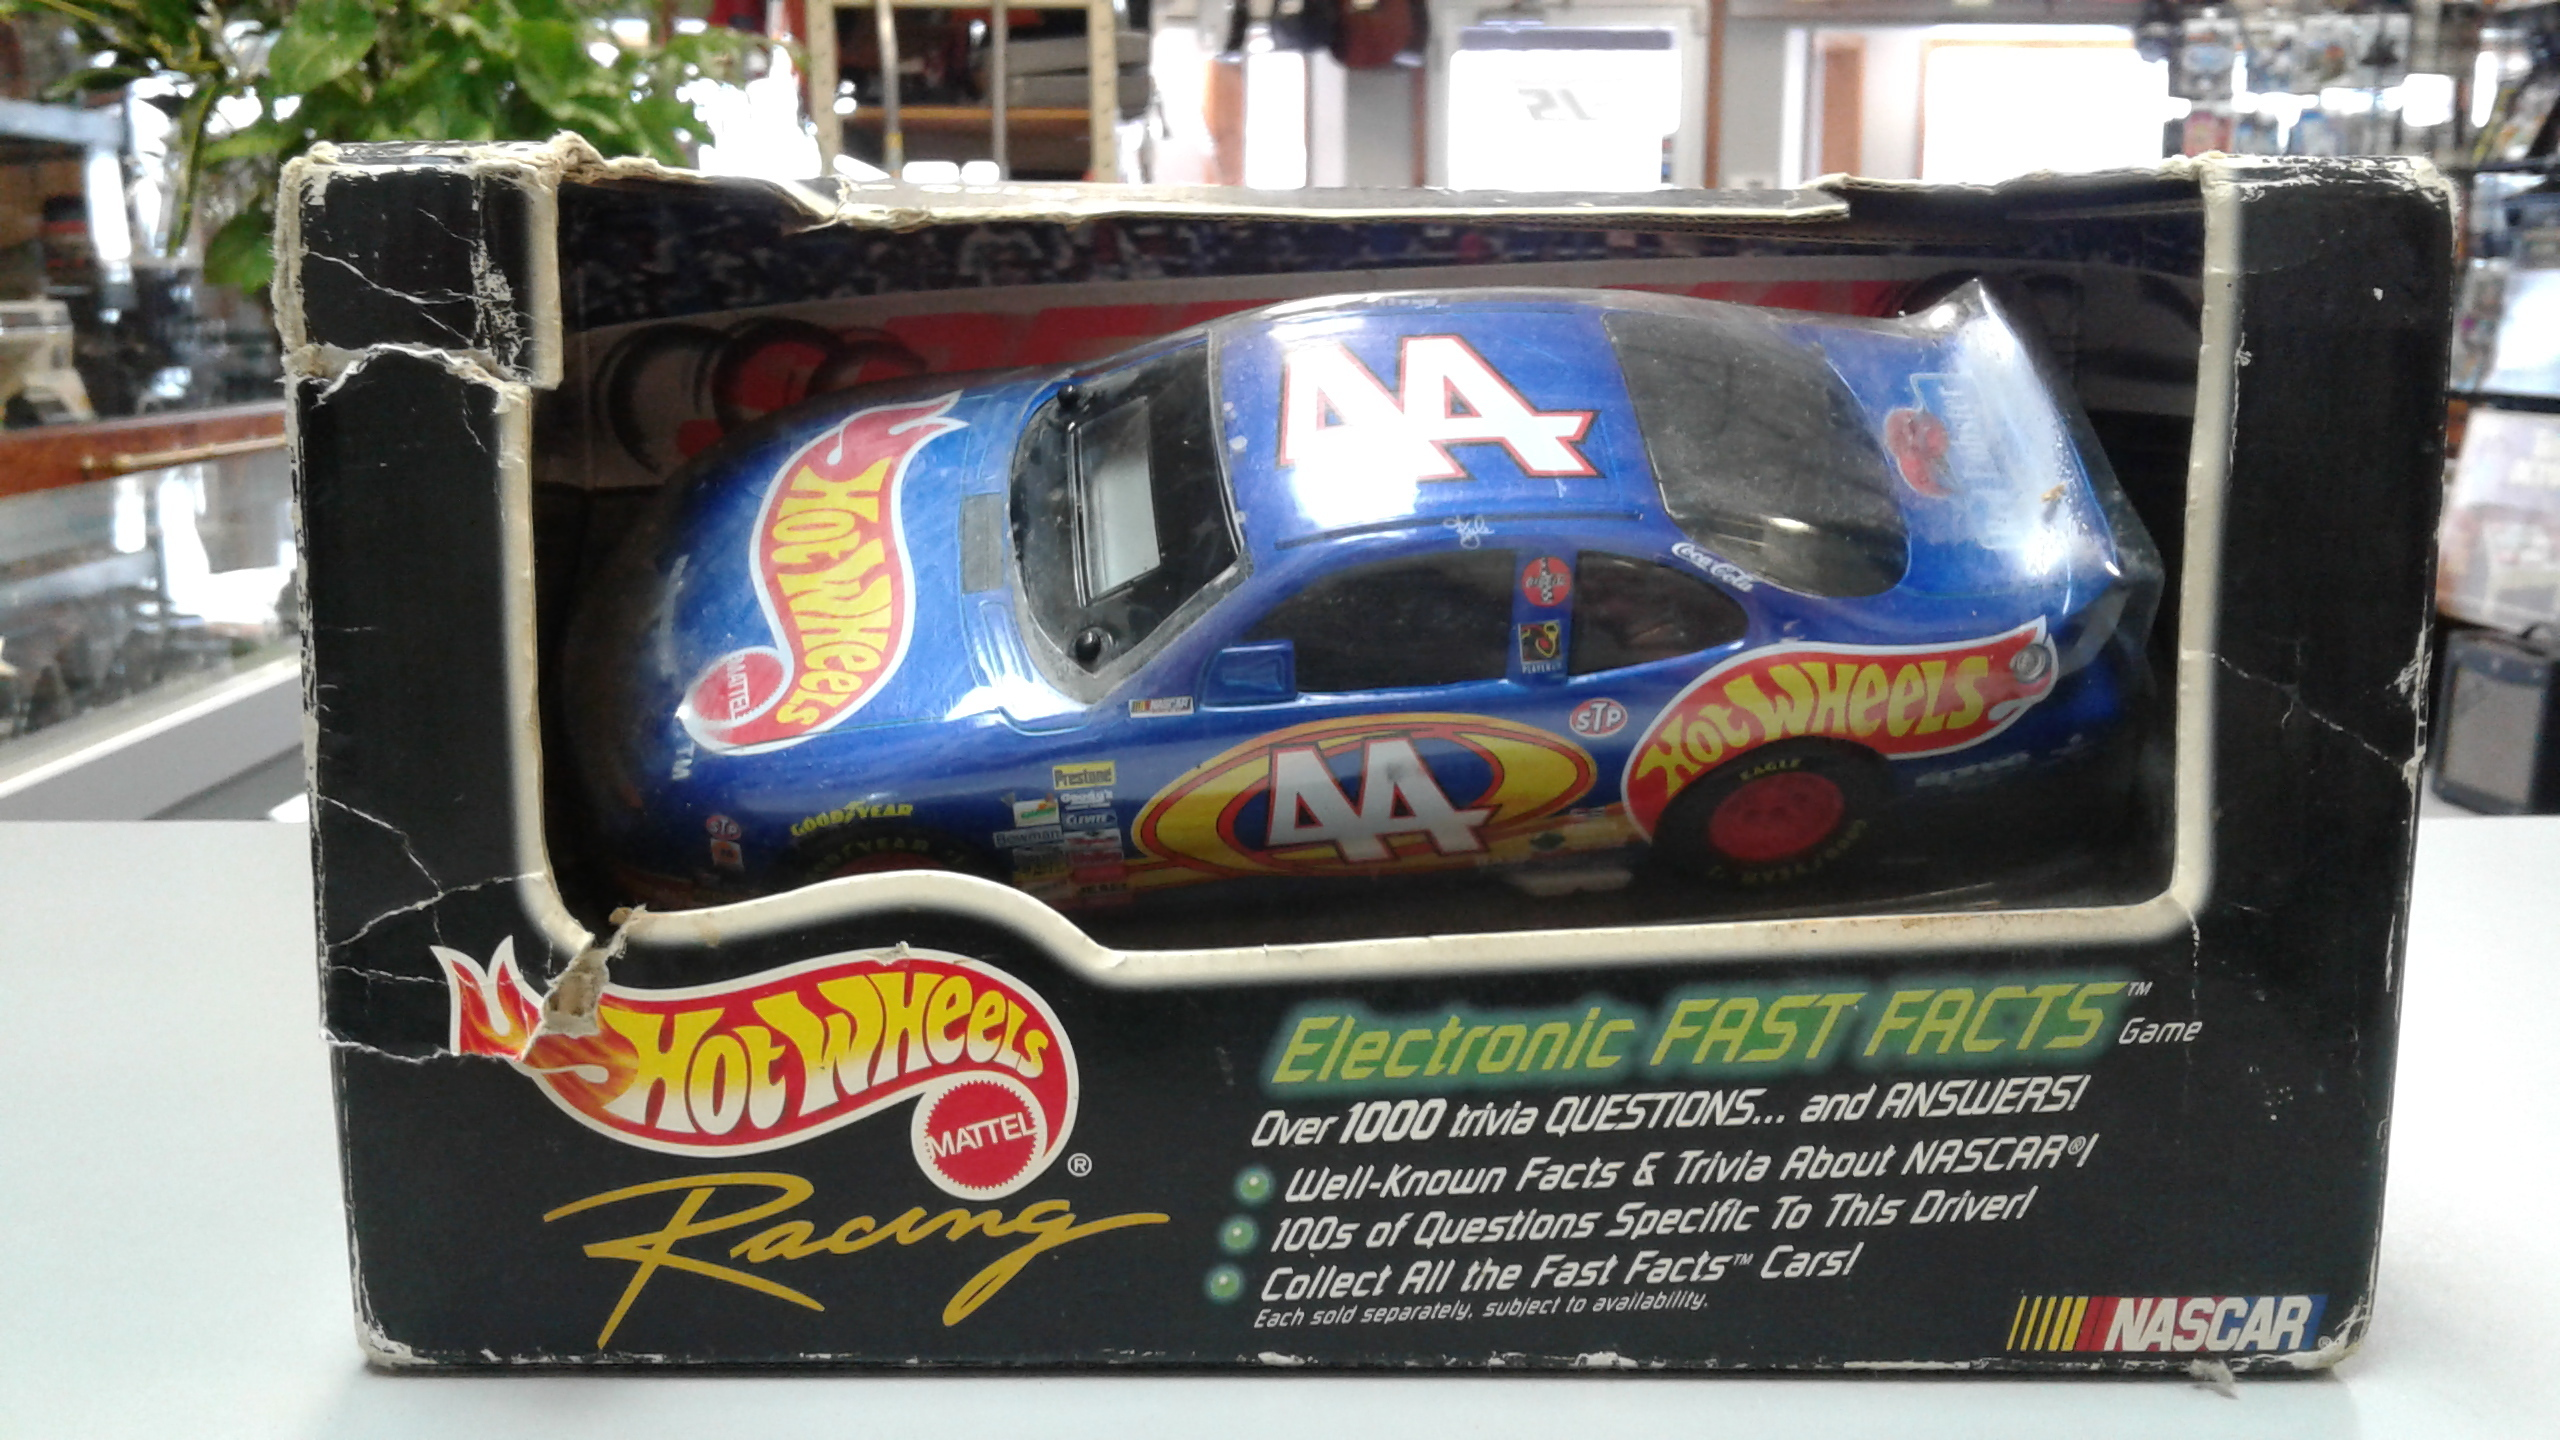 Nascar Kyle Petty Hot Wheels Car, Electronic Fast Facts Game